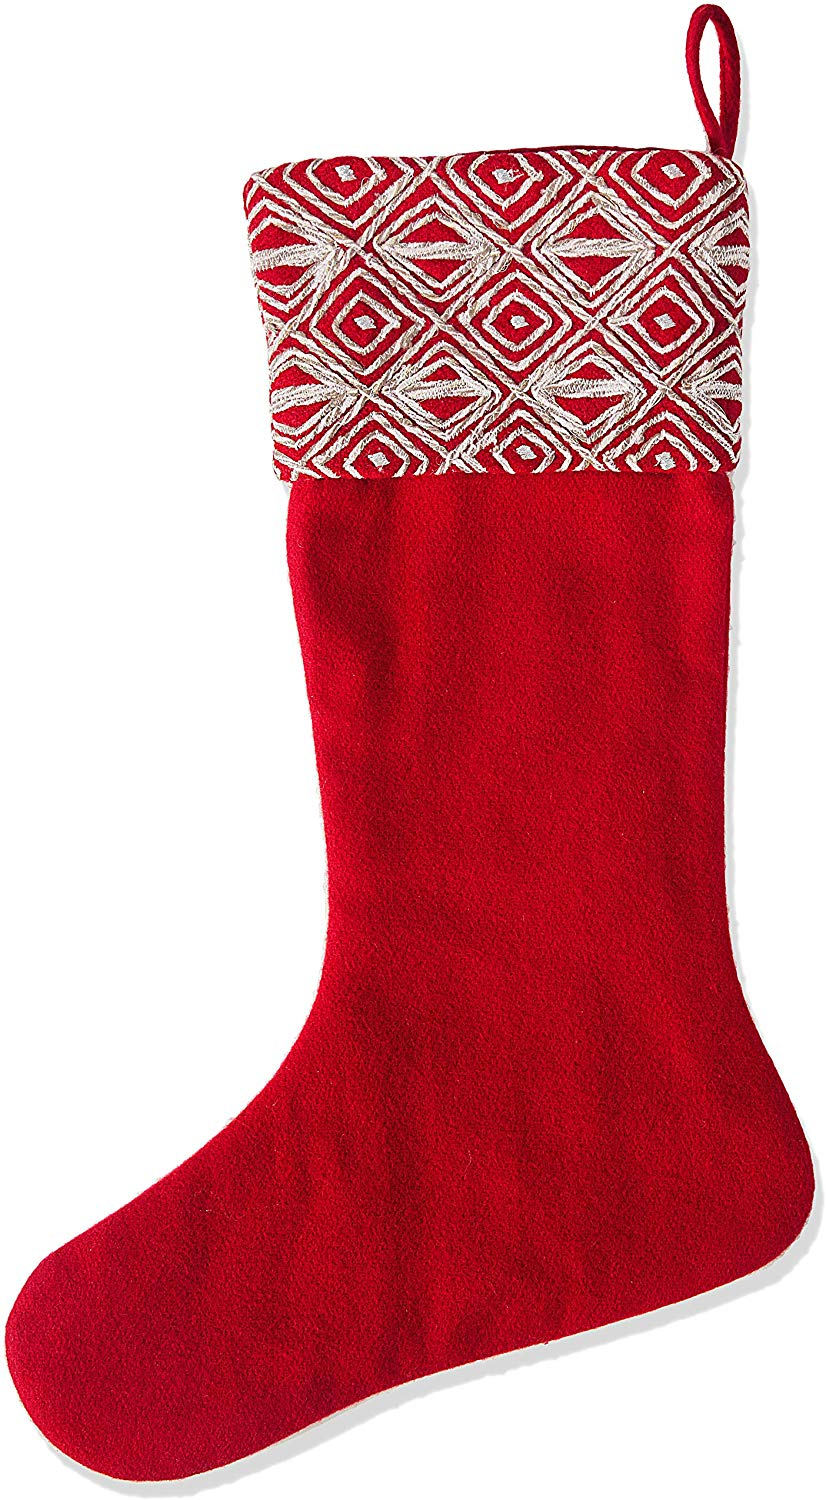 Red Christmas Stocking  with Geo Embroidered Cuff in Recycled Wool